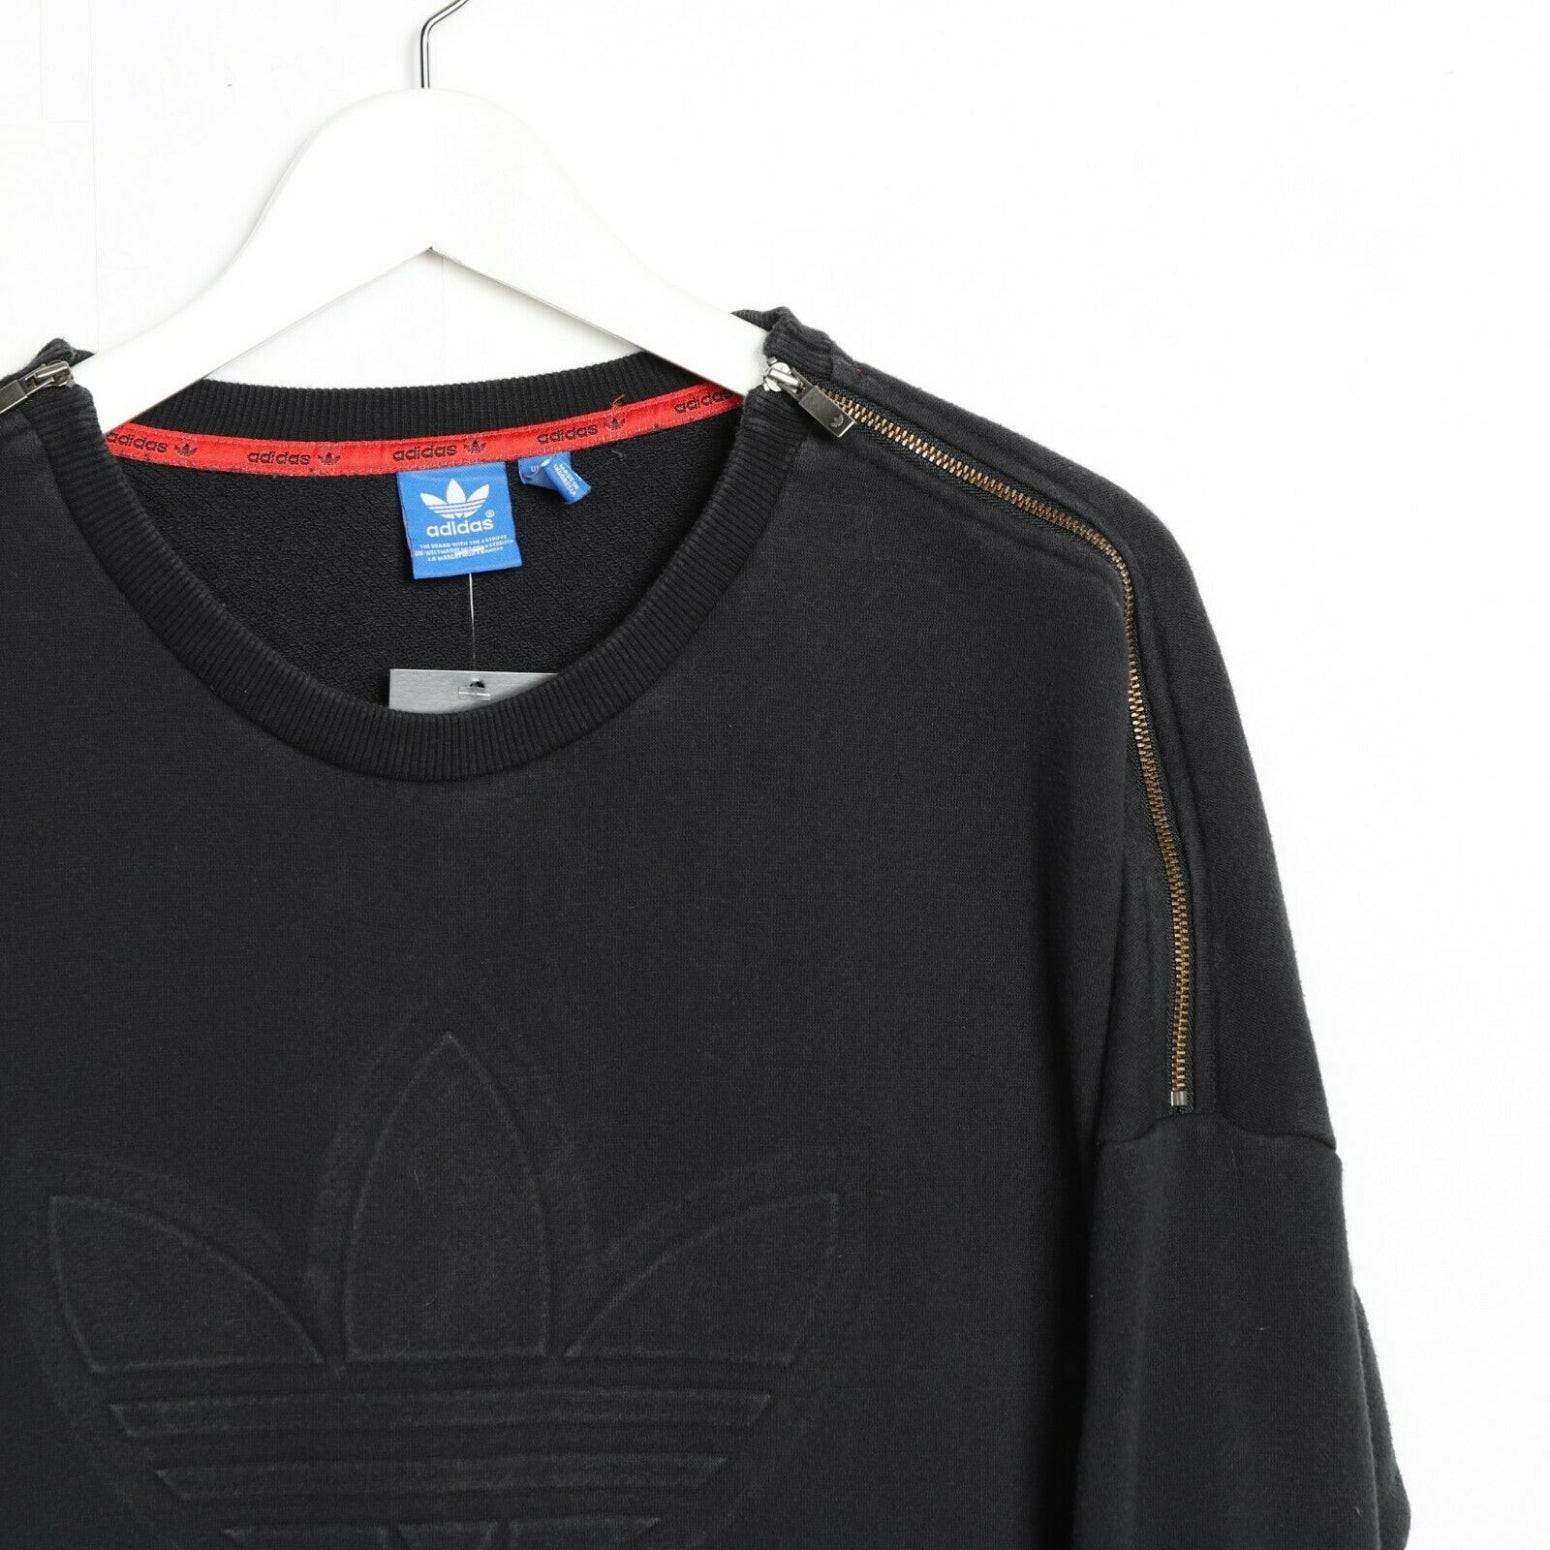 Vintage Women's ADIDAS ORIGINALS Big Trefoil Logo Sweatshirt Black | UK 10